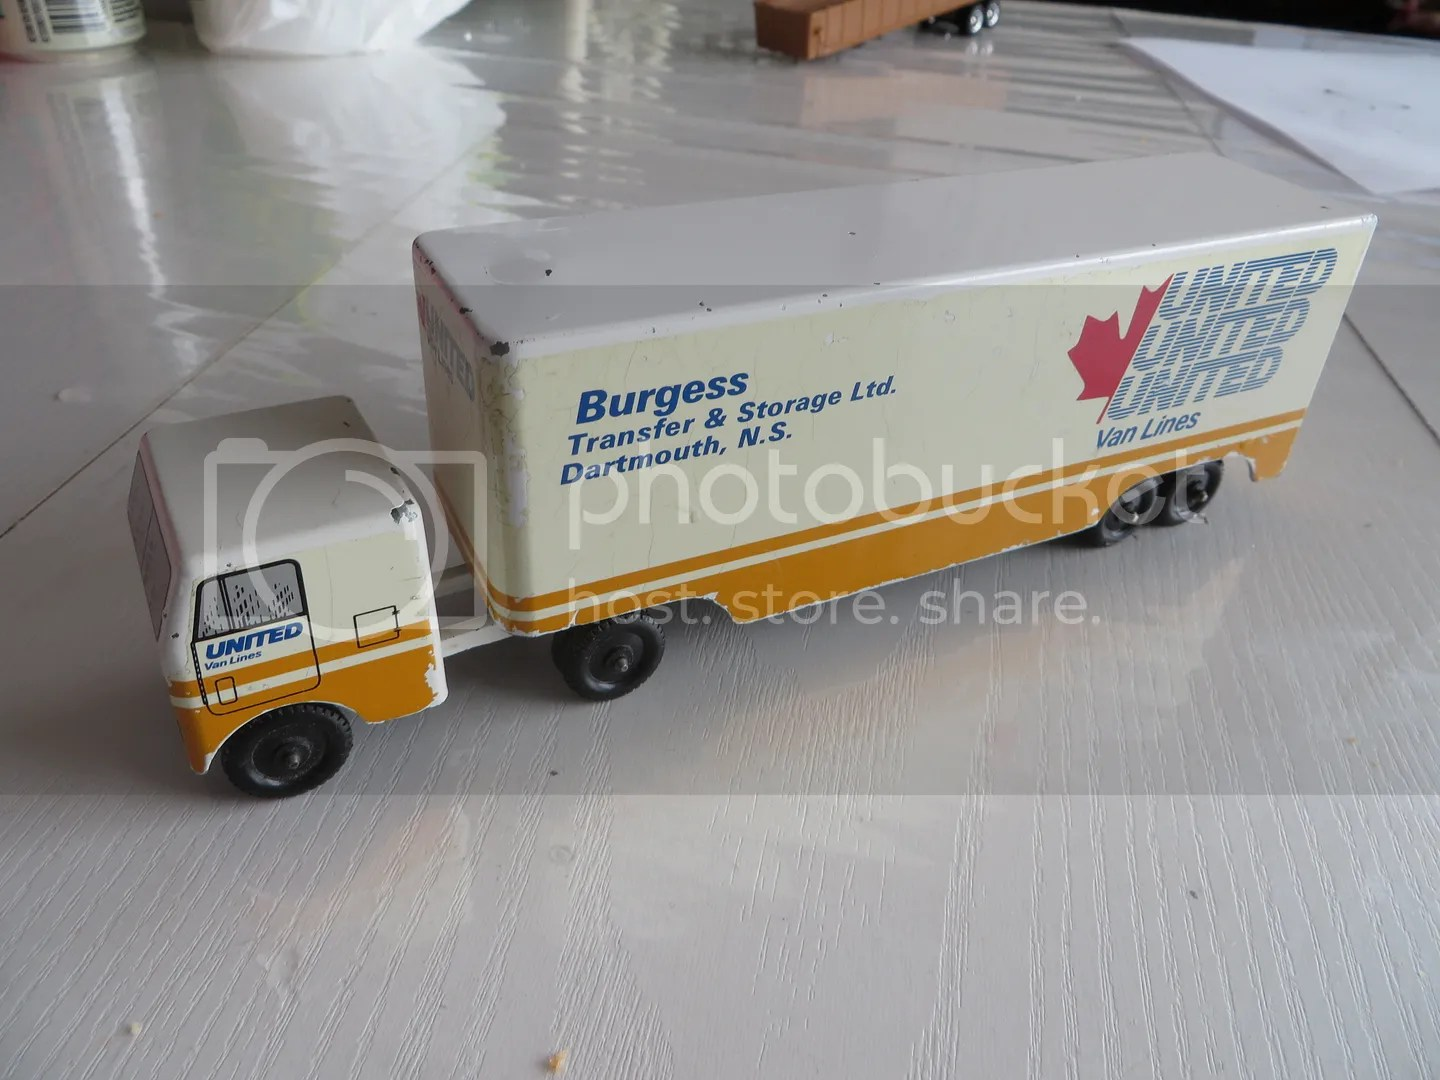 Toy Moving Truck 036 Zpsd88c6722 Jpg Photo By Bananaboat03 Photobucket